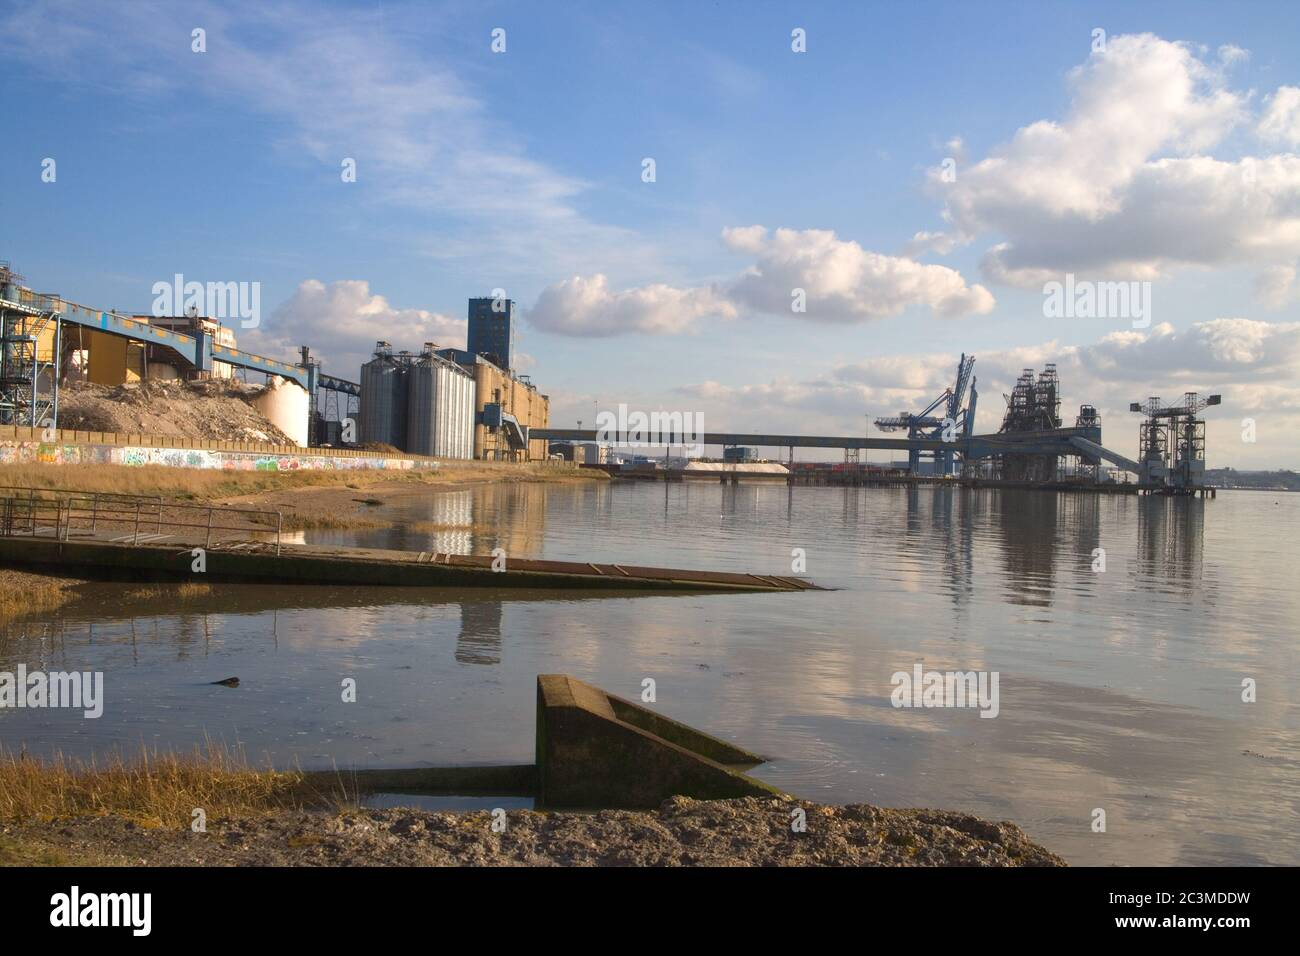 tilbury on the river thames in london Stock Photo